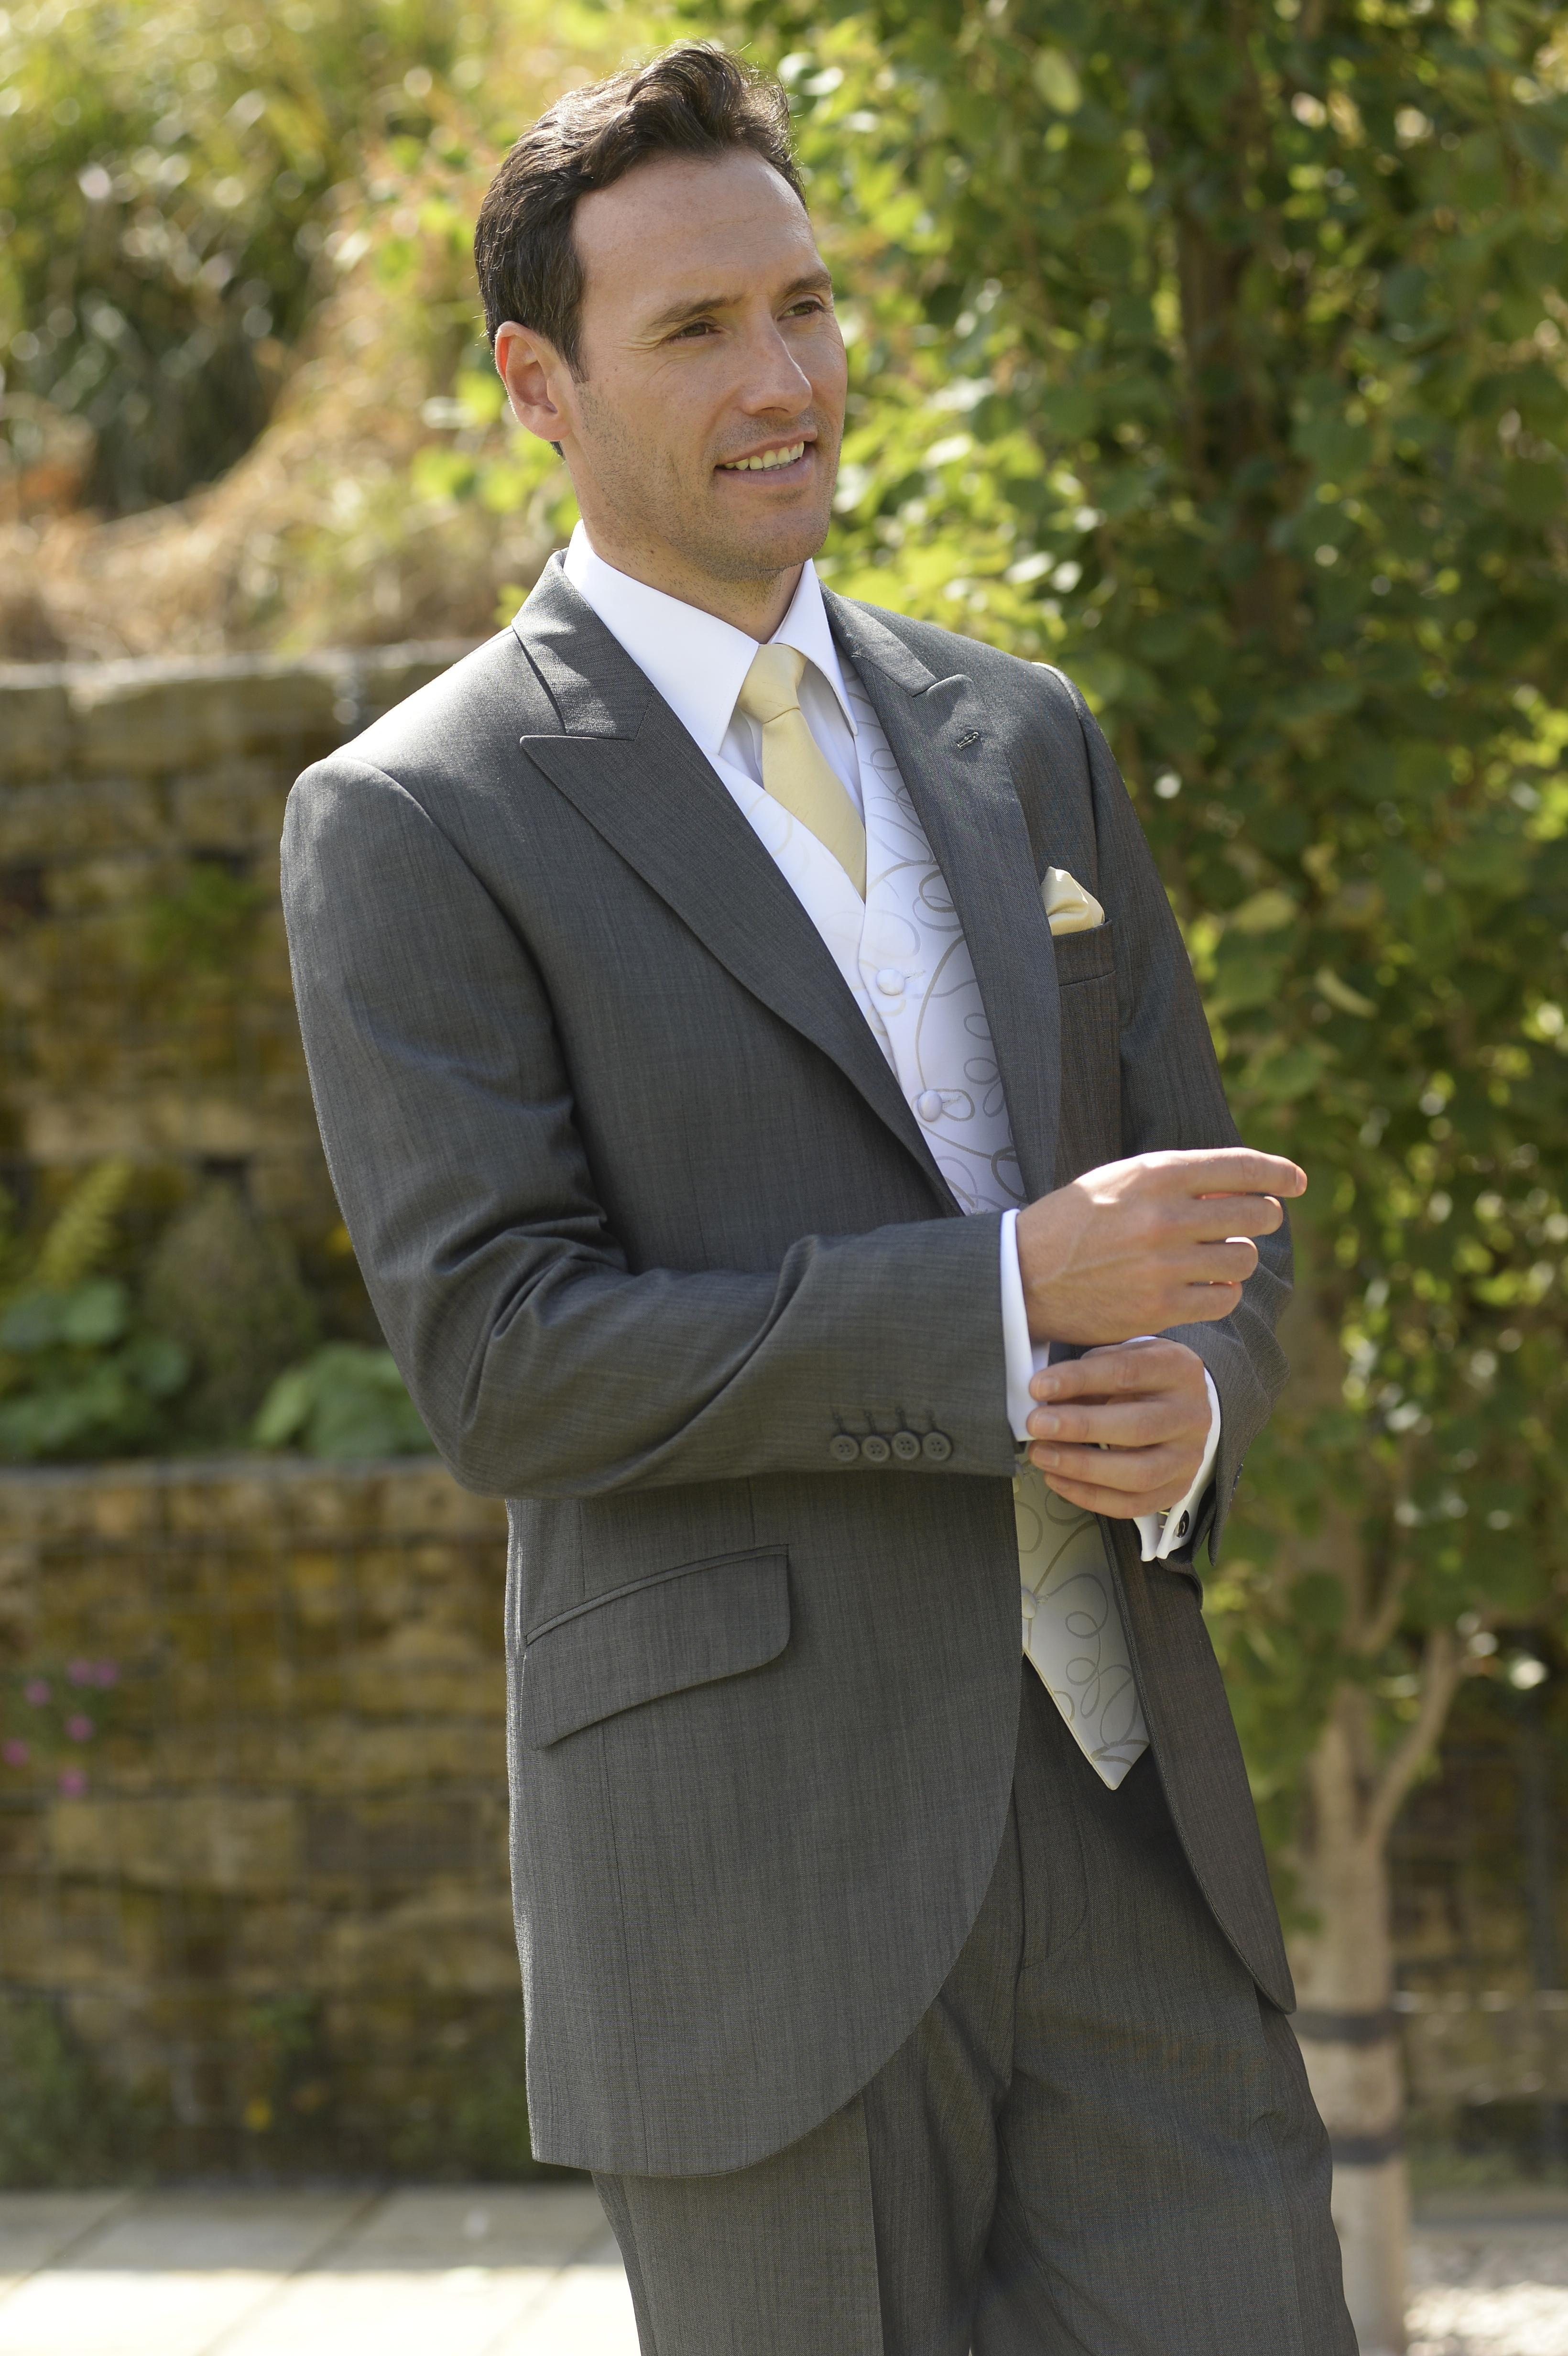 Silk Grey short jacket with Champagne waistcoat and gold tie and handkerchief